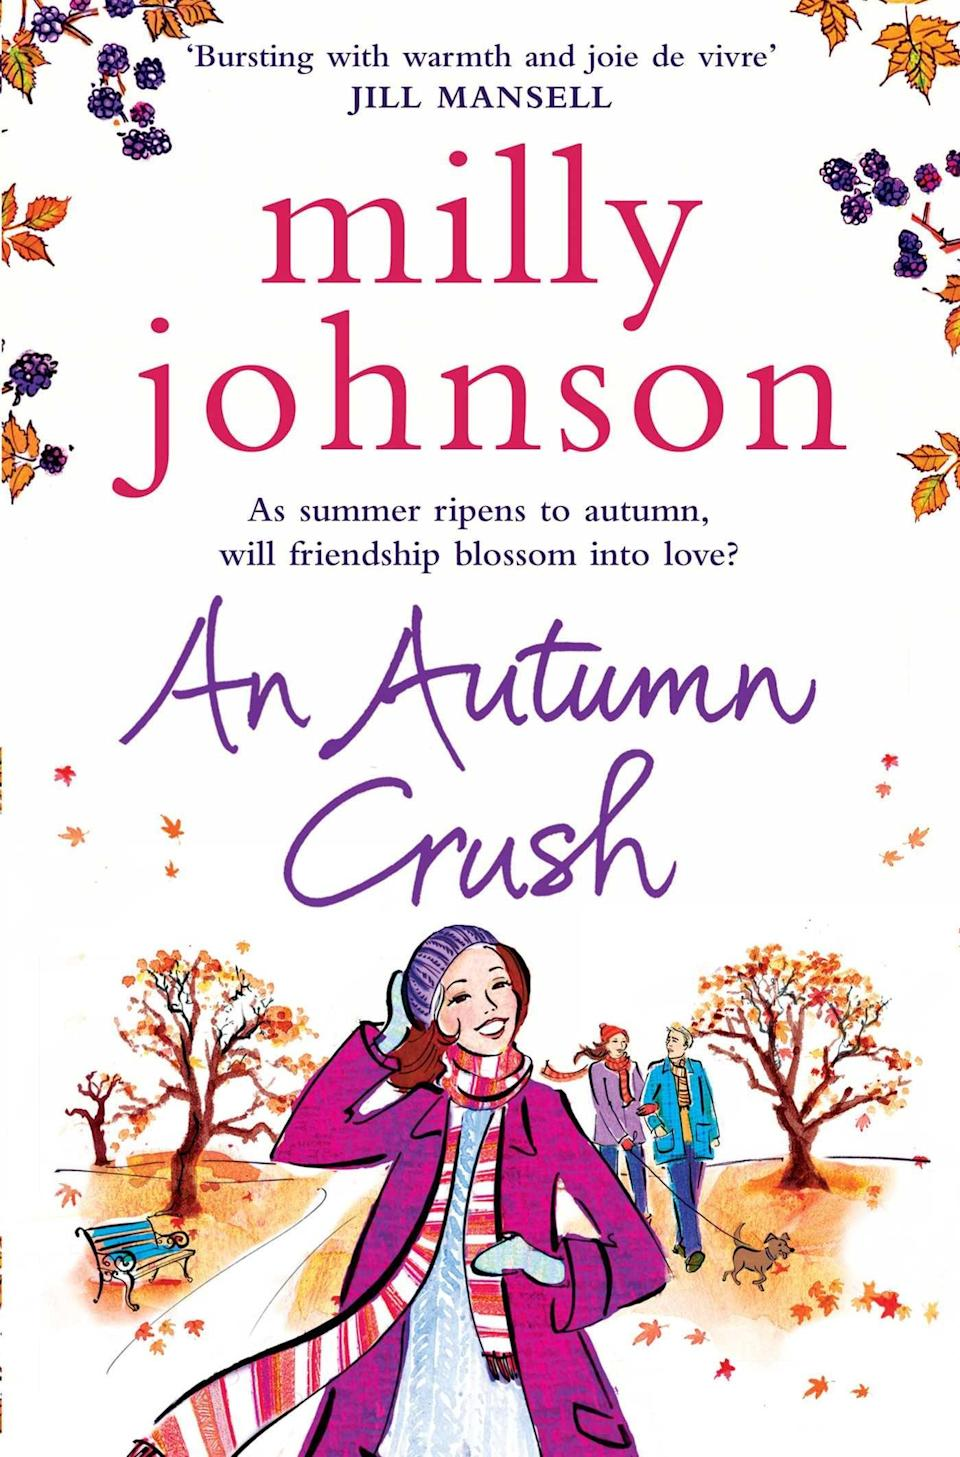 <p>Milly Johnson's <span><strong>An Autumn Crush</strong></span> is every bit as fluffy and fun as it appears to be from the cover. Full of lovely descriptions of Fall in England, this sweet book follows four friends in their mid-30s and the romantic entanglements that catch them all by surprise.</p>